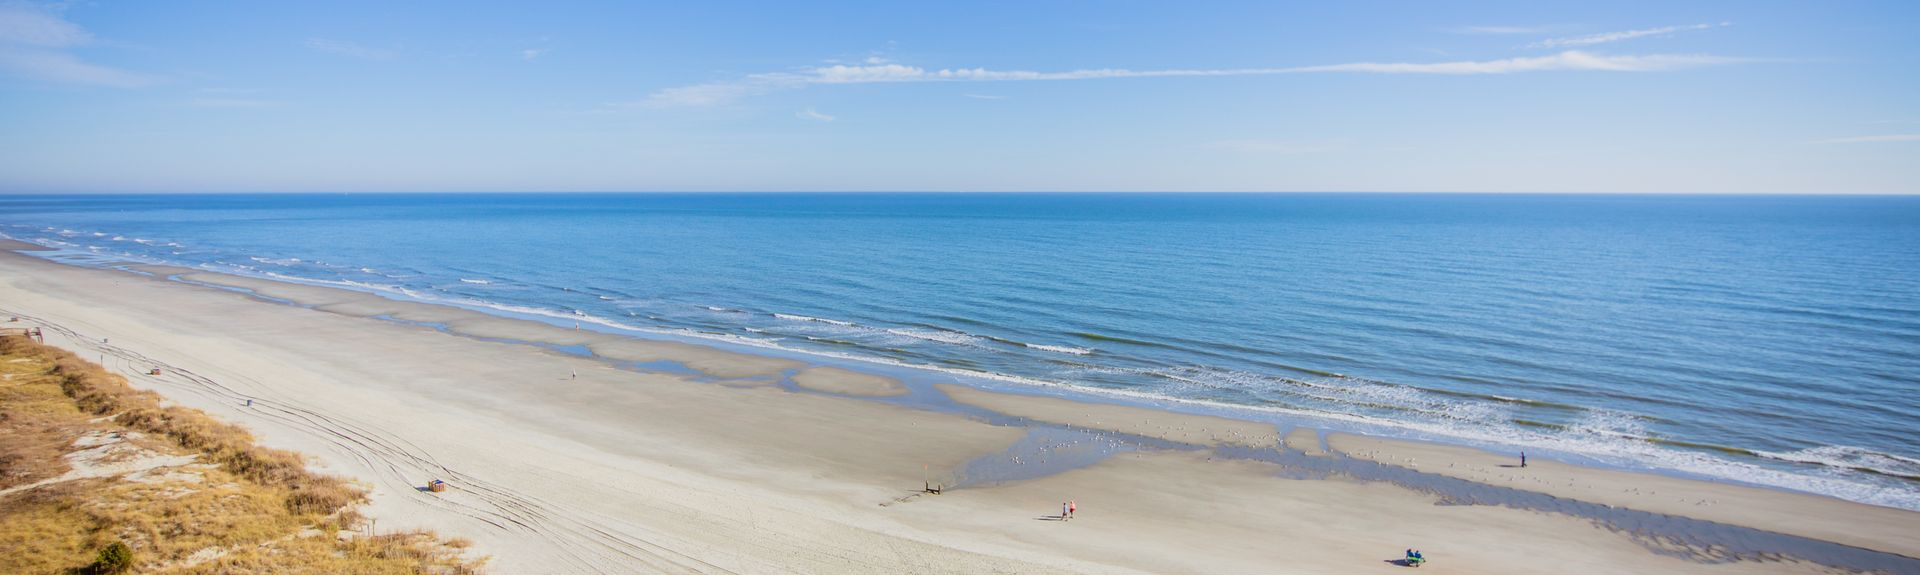 SouthShore Villas, Crescent Beach, North Myrtle Beach, SC, USA